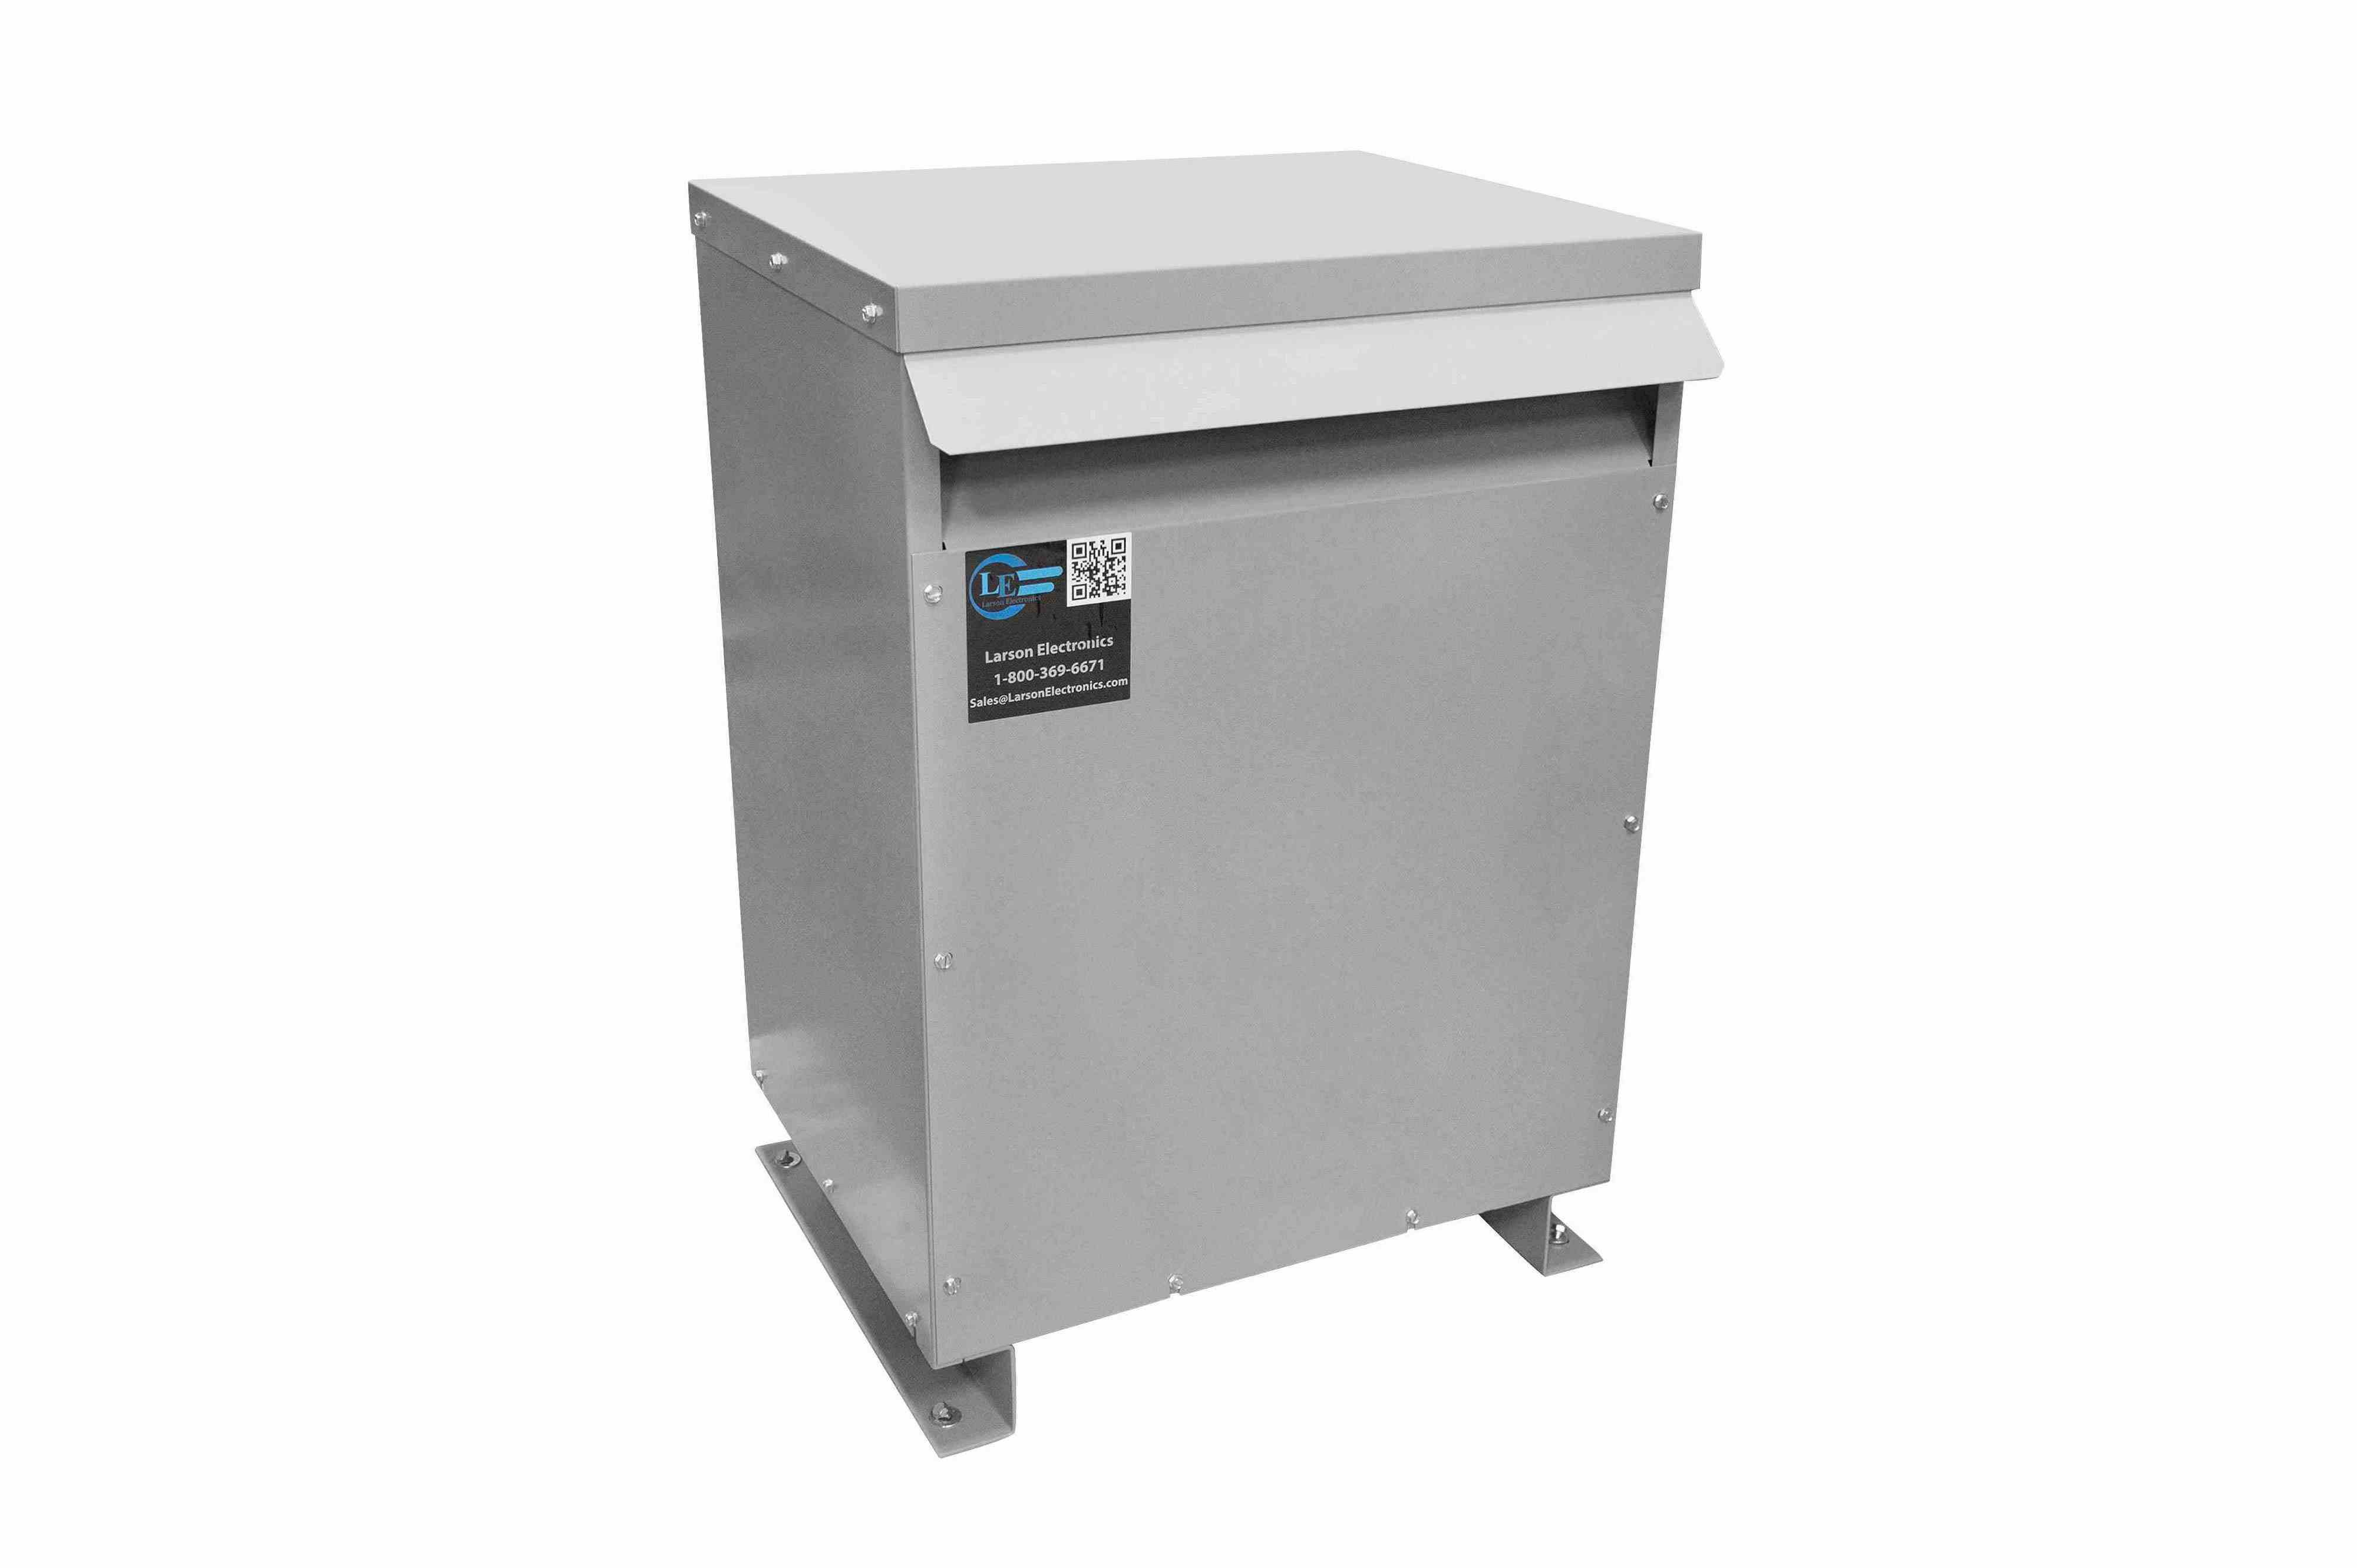 9 kVA 3PH DOE Transformer, 415V Delta Primary, 208Y/120 Wye-N Secondary, N3R, Ventilated, 50 Hz, Fully Potted, Copper Windings